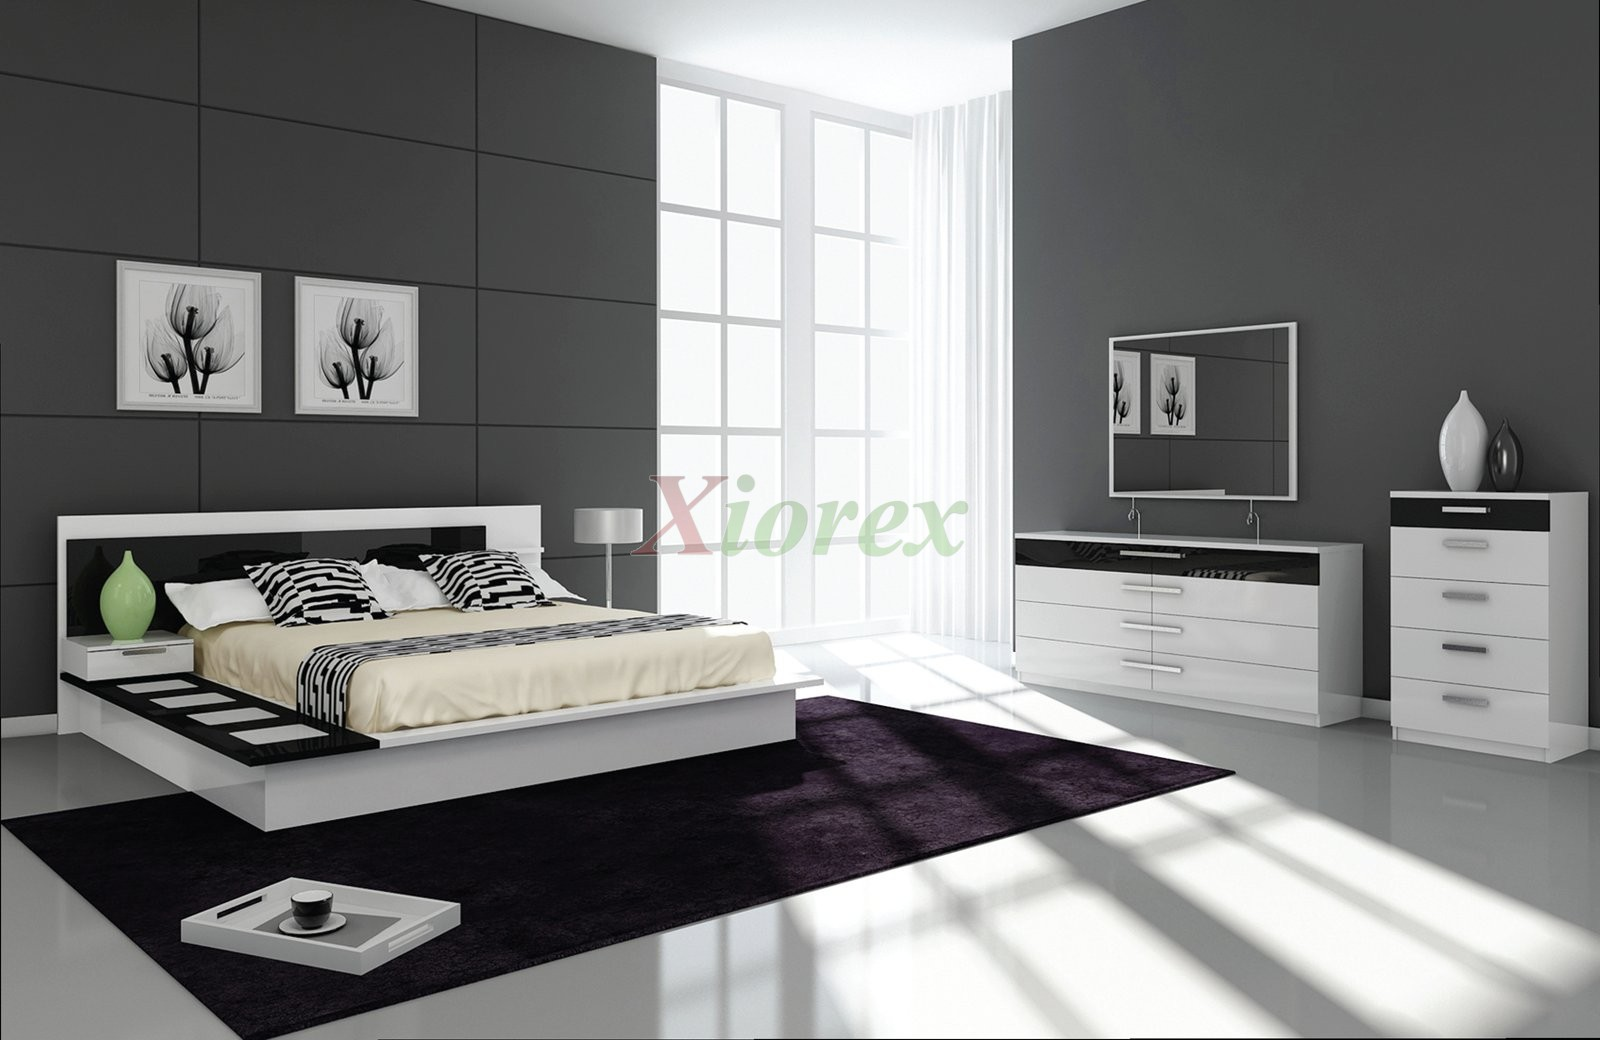 Draco Black And White Contemporary Bedroom Furniture Sets